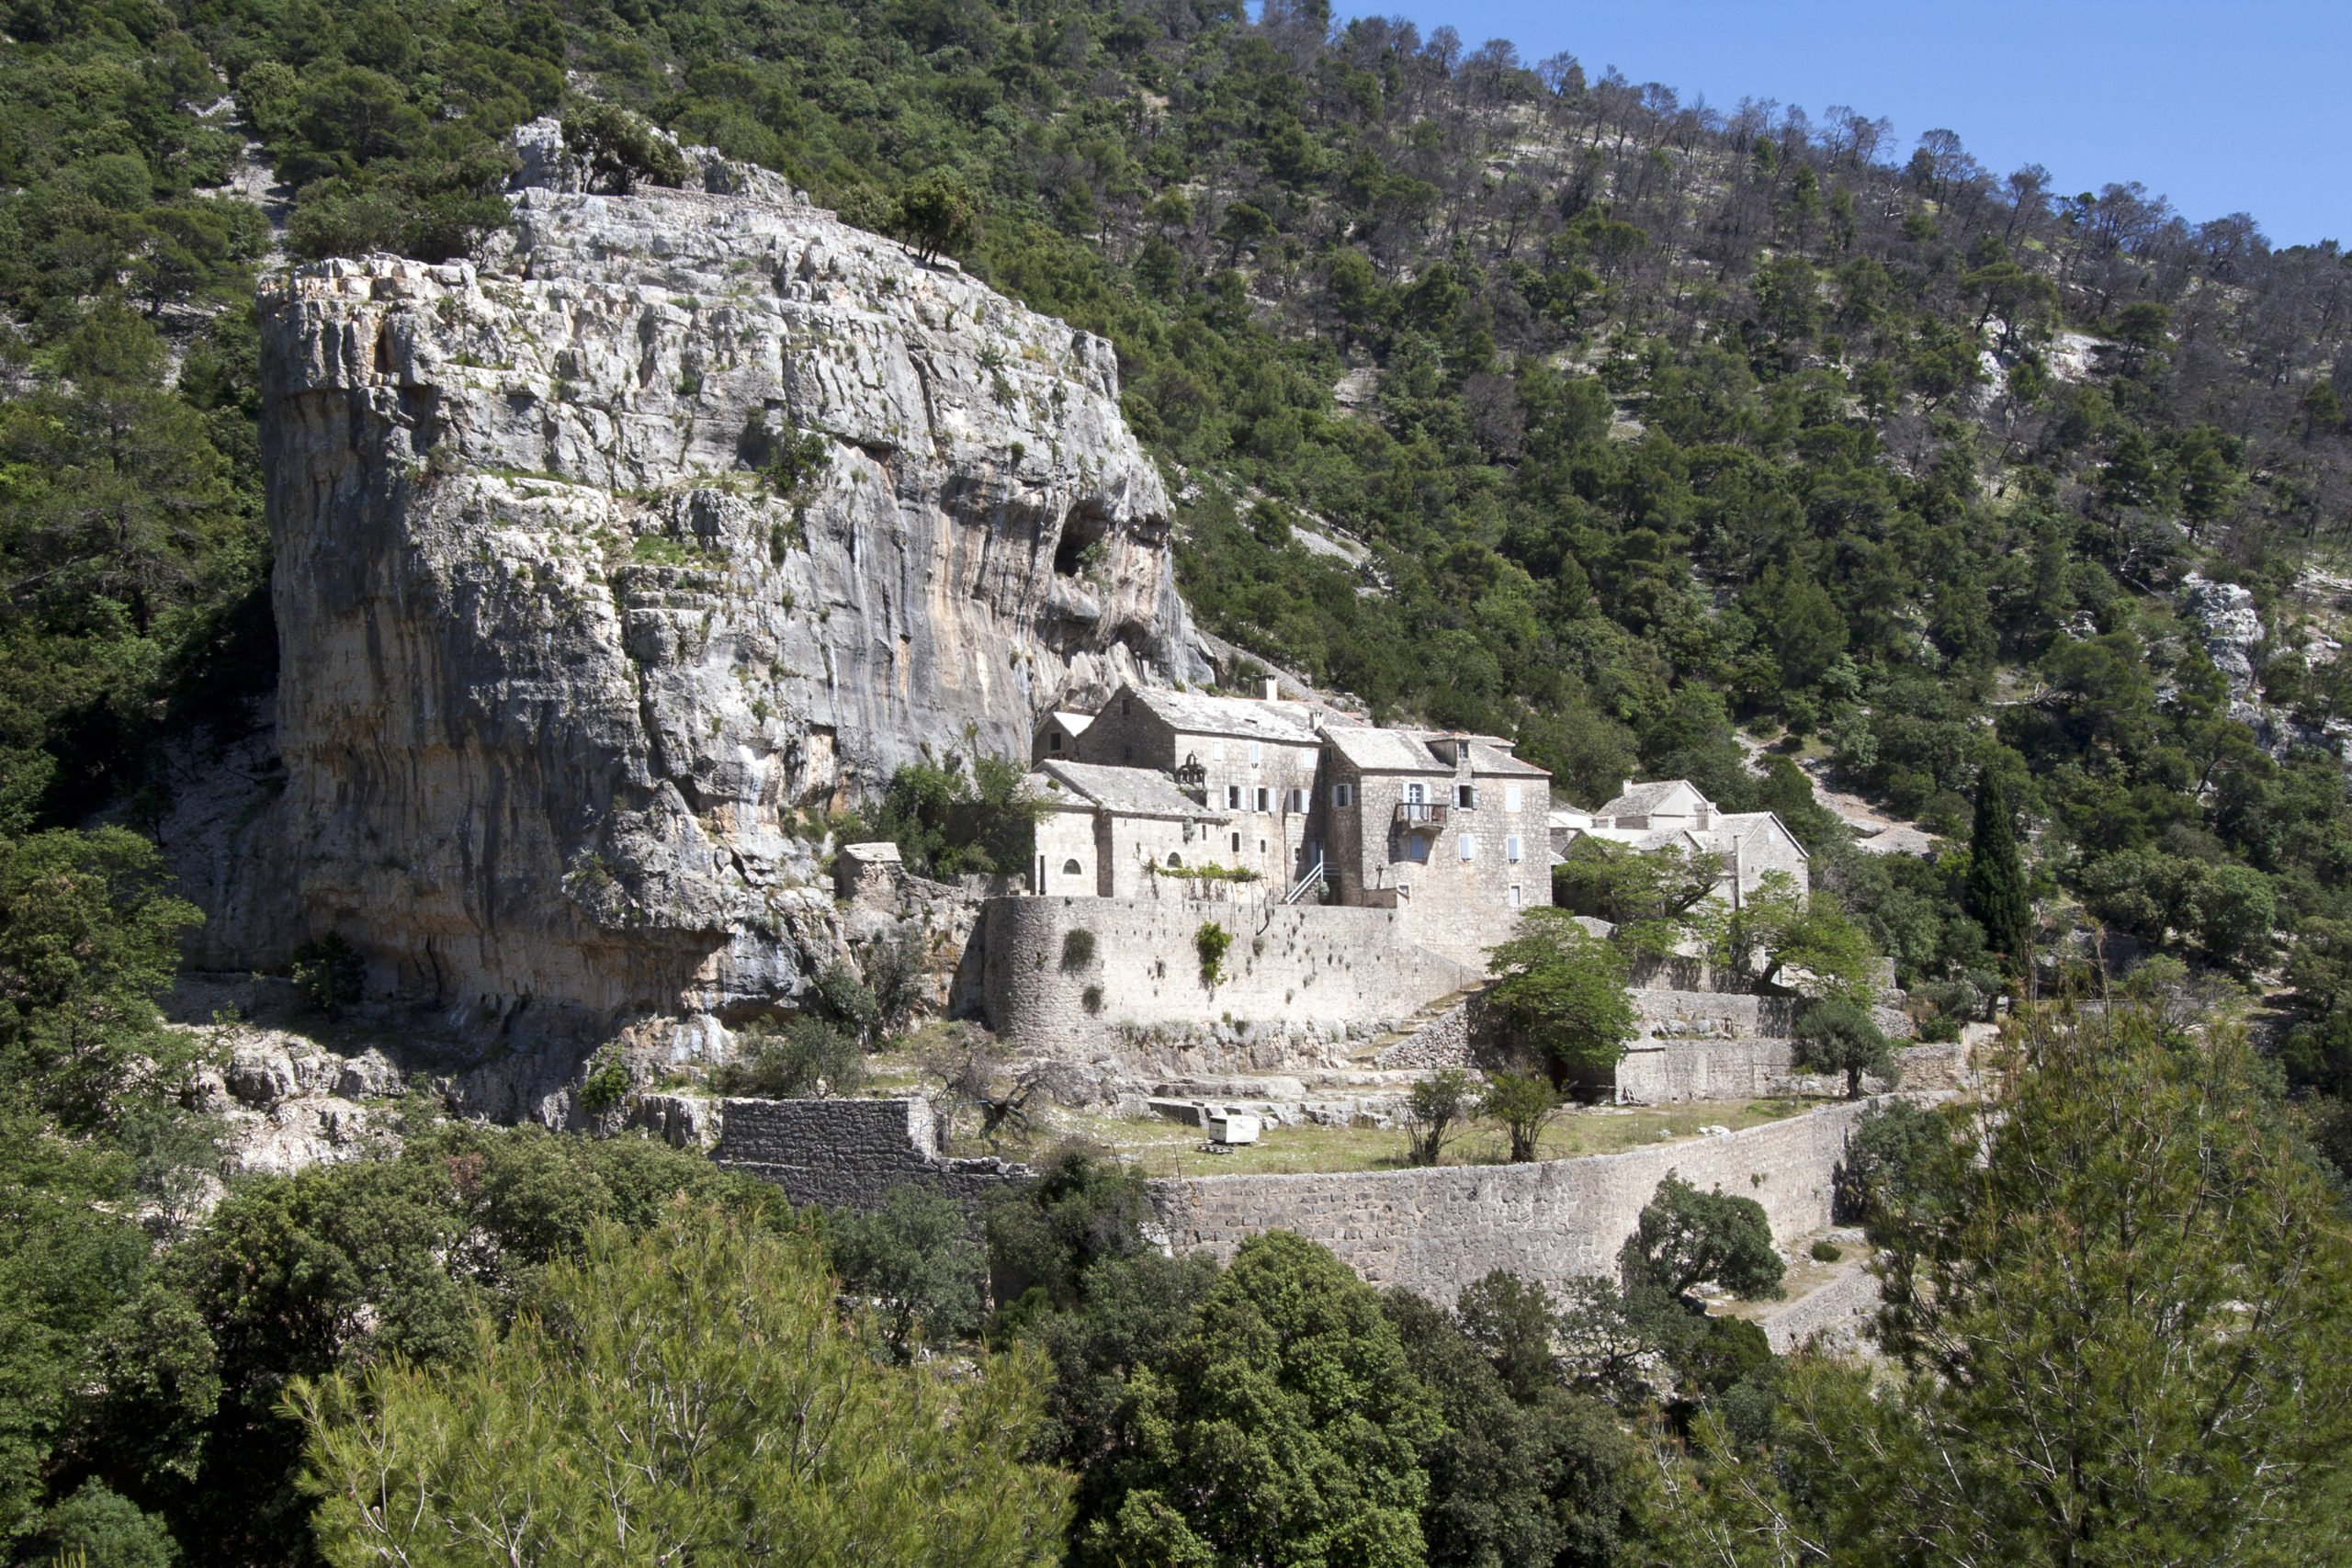 Explore Blaca Medieval Glagolitic Hermitage On Brac Island On The 7 Day Croatian Island Package Tour